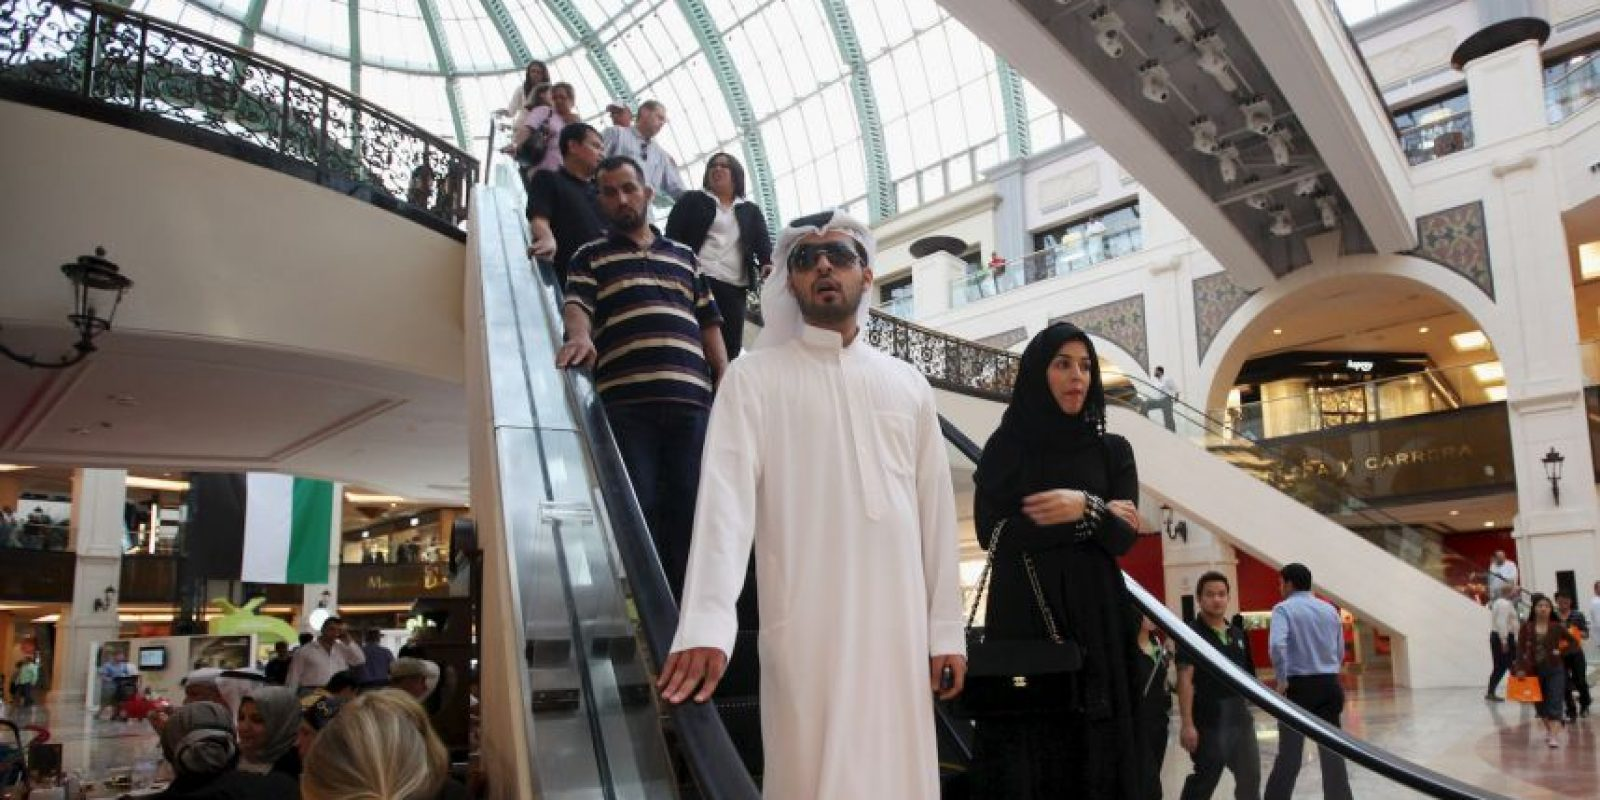 Salir a la calle en Dubai Foto: Getty Images